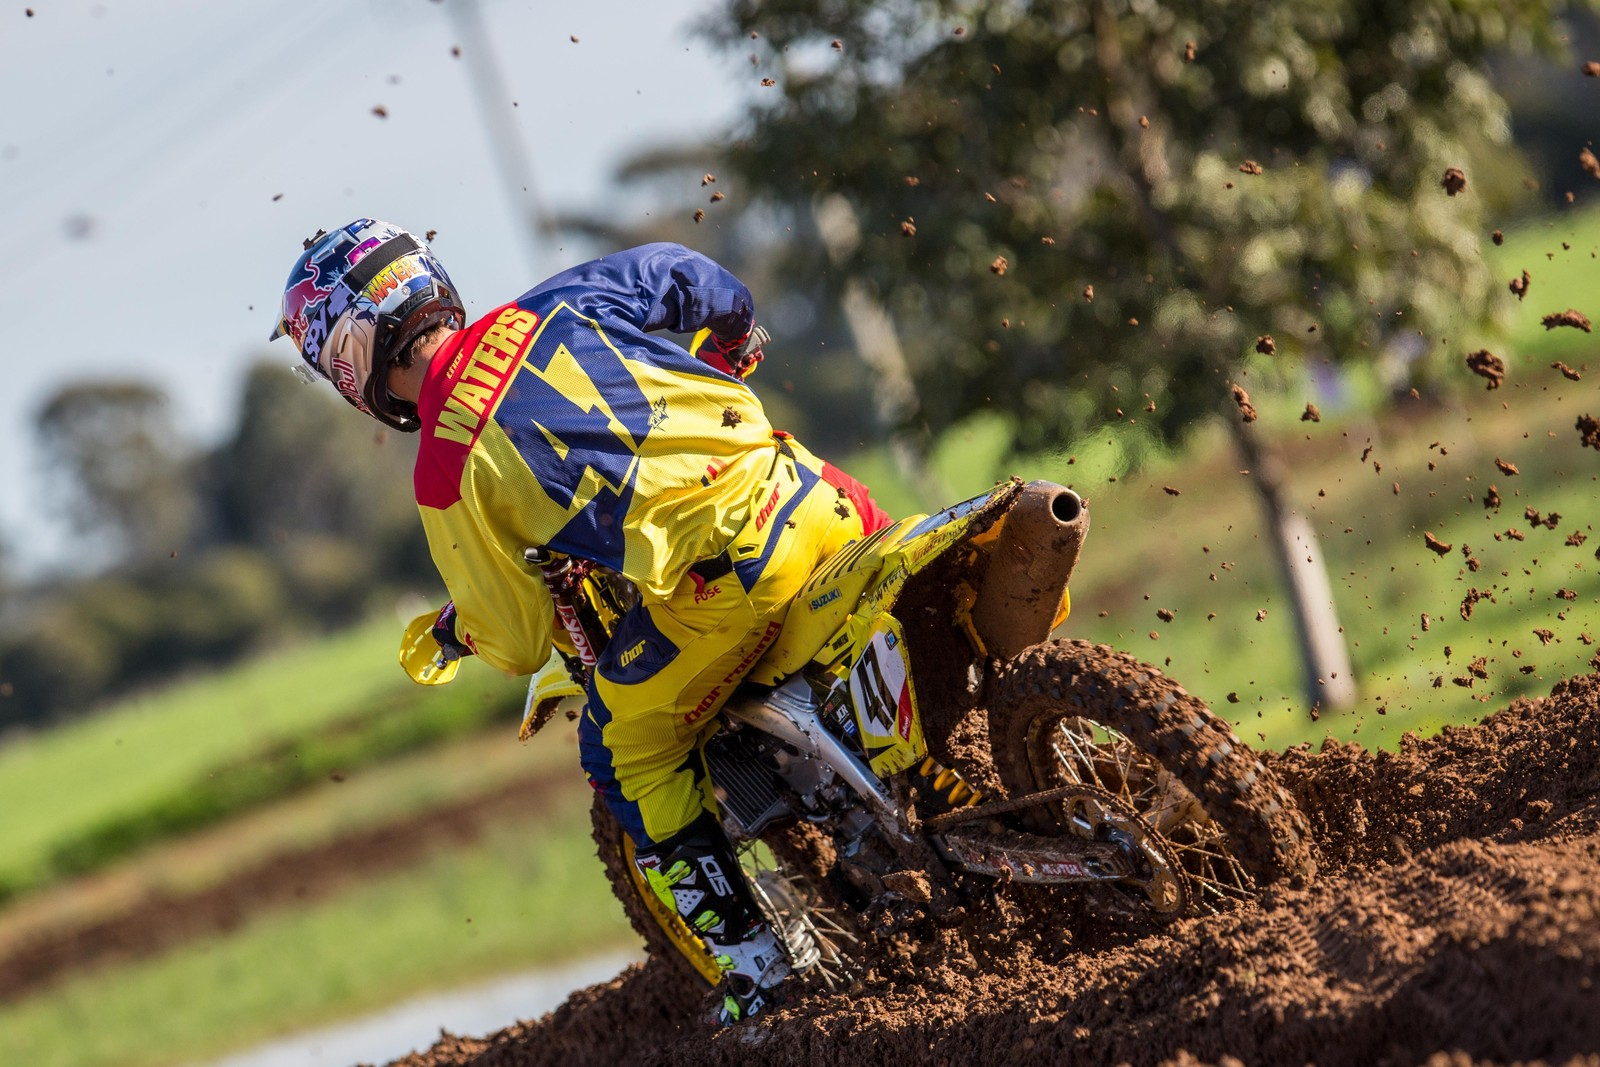 Todd Waters - Australian Motul MX Championships: Round 8, Shepparton - Motocross Pictures - Vital MX